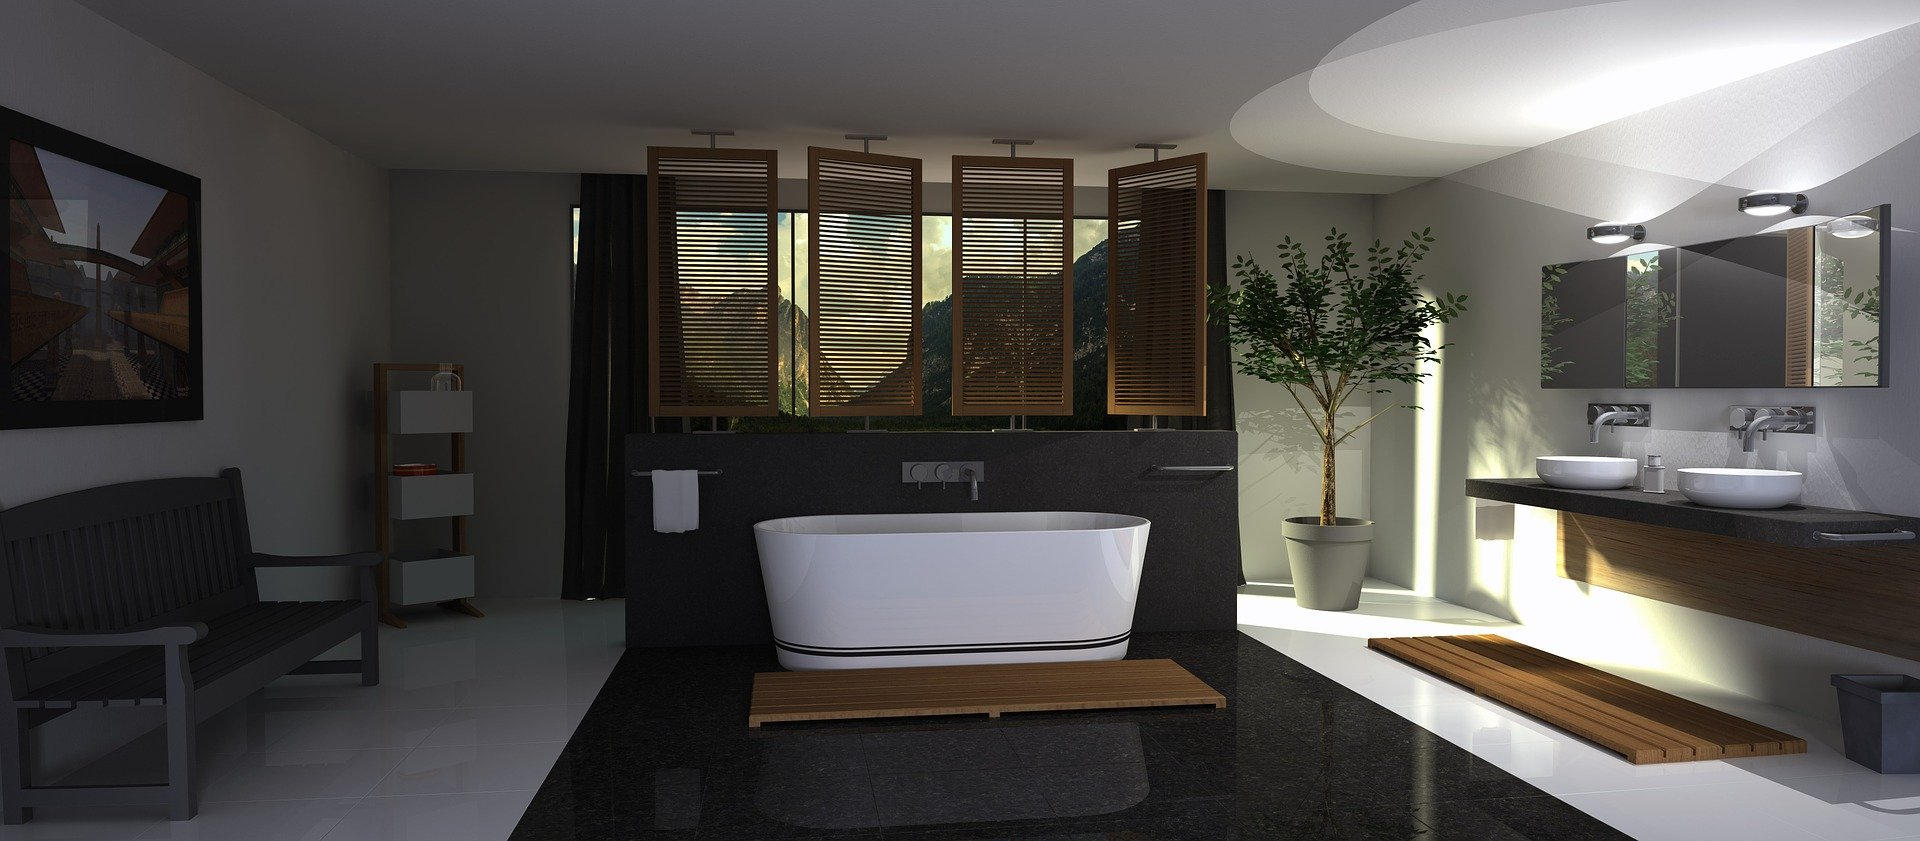 12 latest Bathroom Designs with variety of styles to match your home